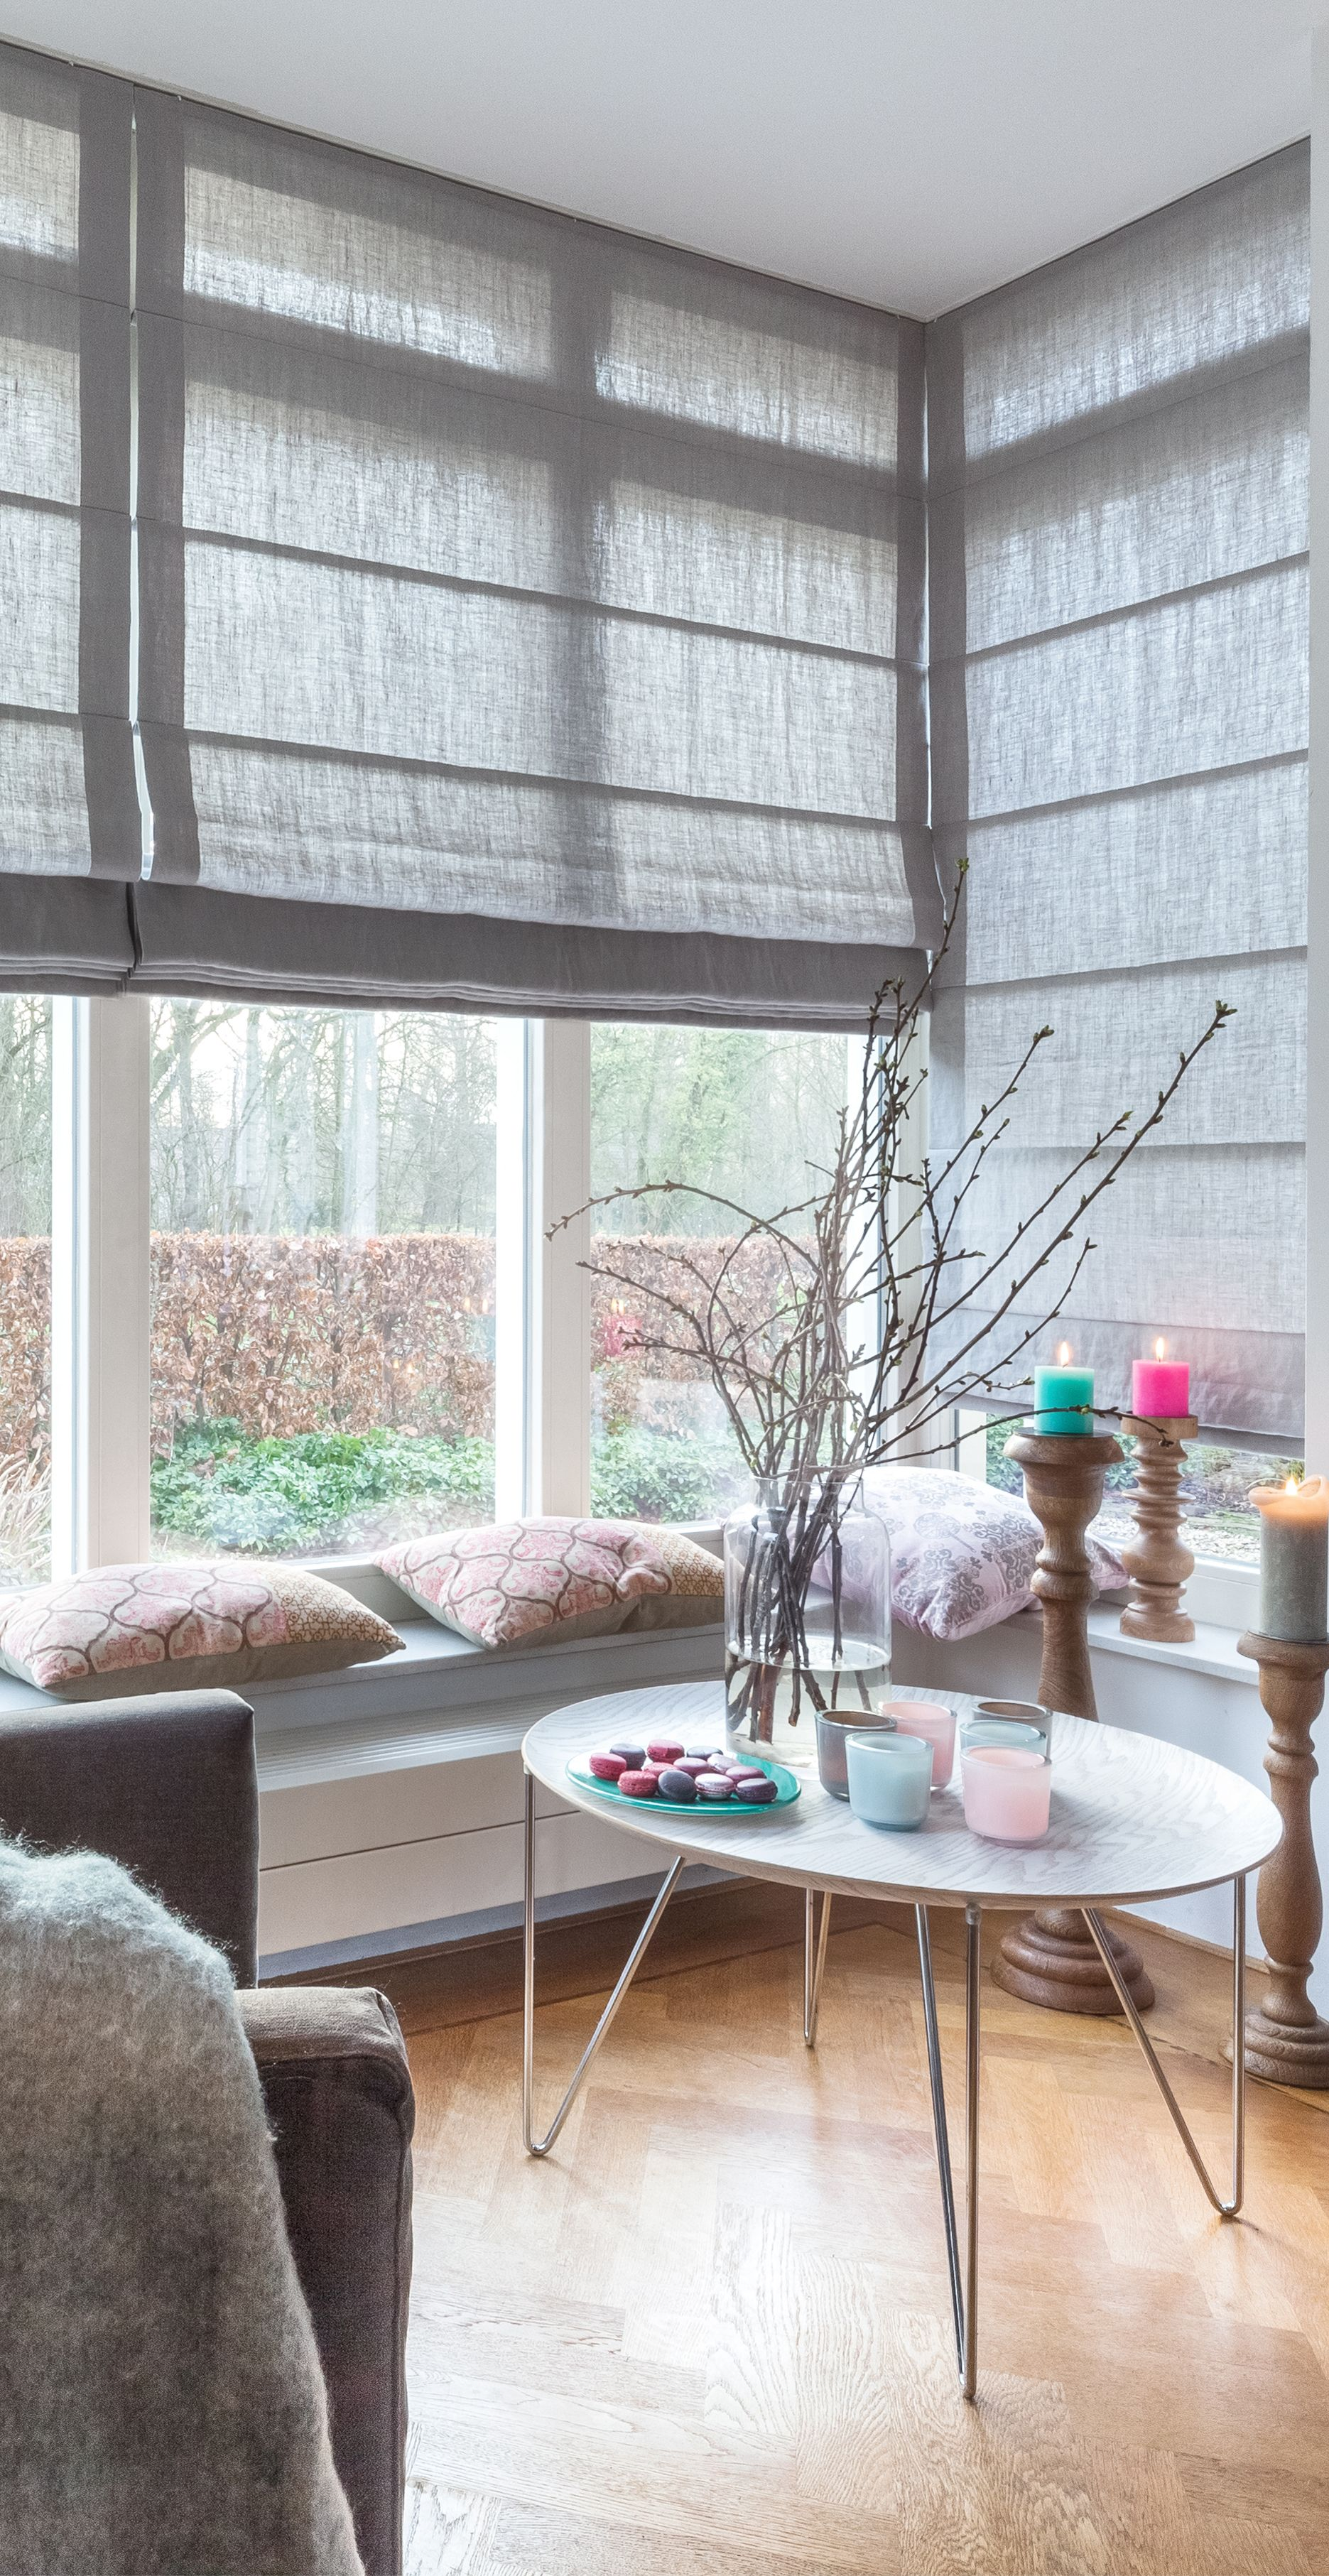 home roman shades pinterest vorh nge raffrollos und wohnzimmer. Black Bedroom Furniture Sets. Home Design Ideas